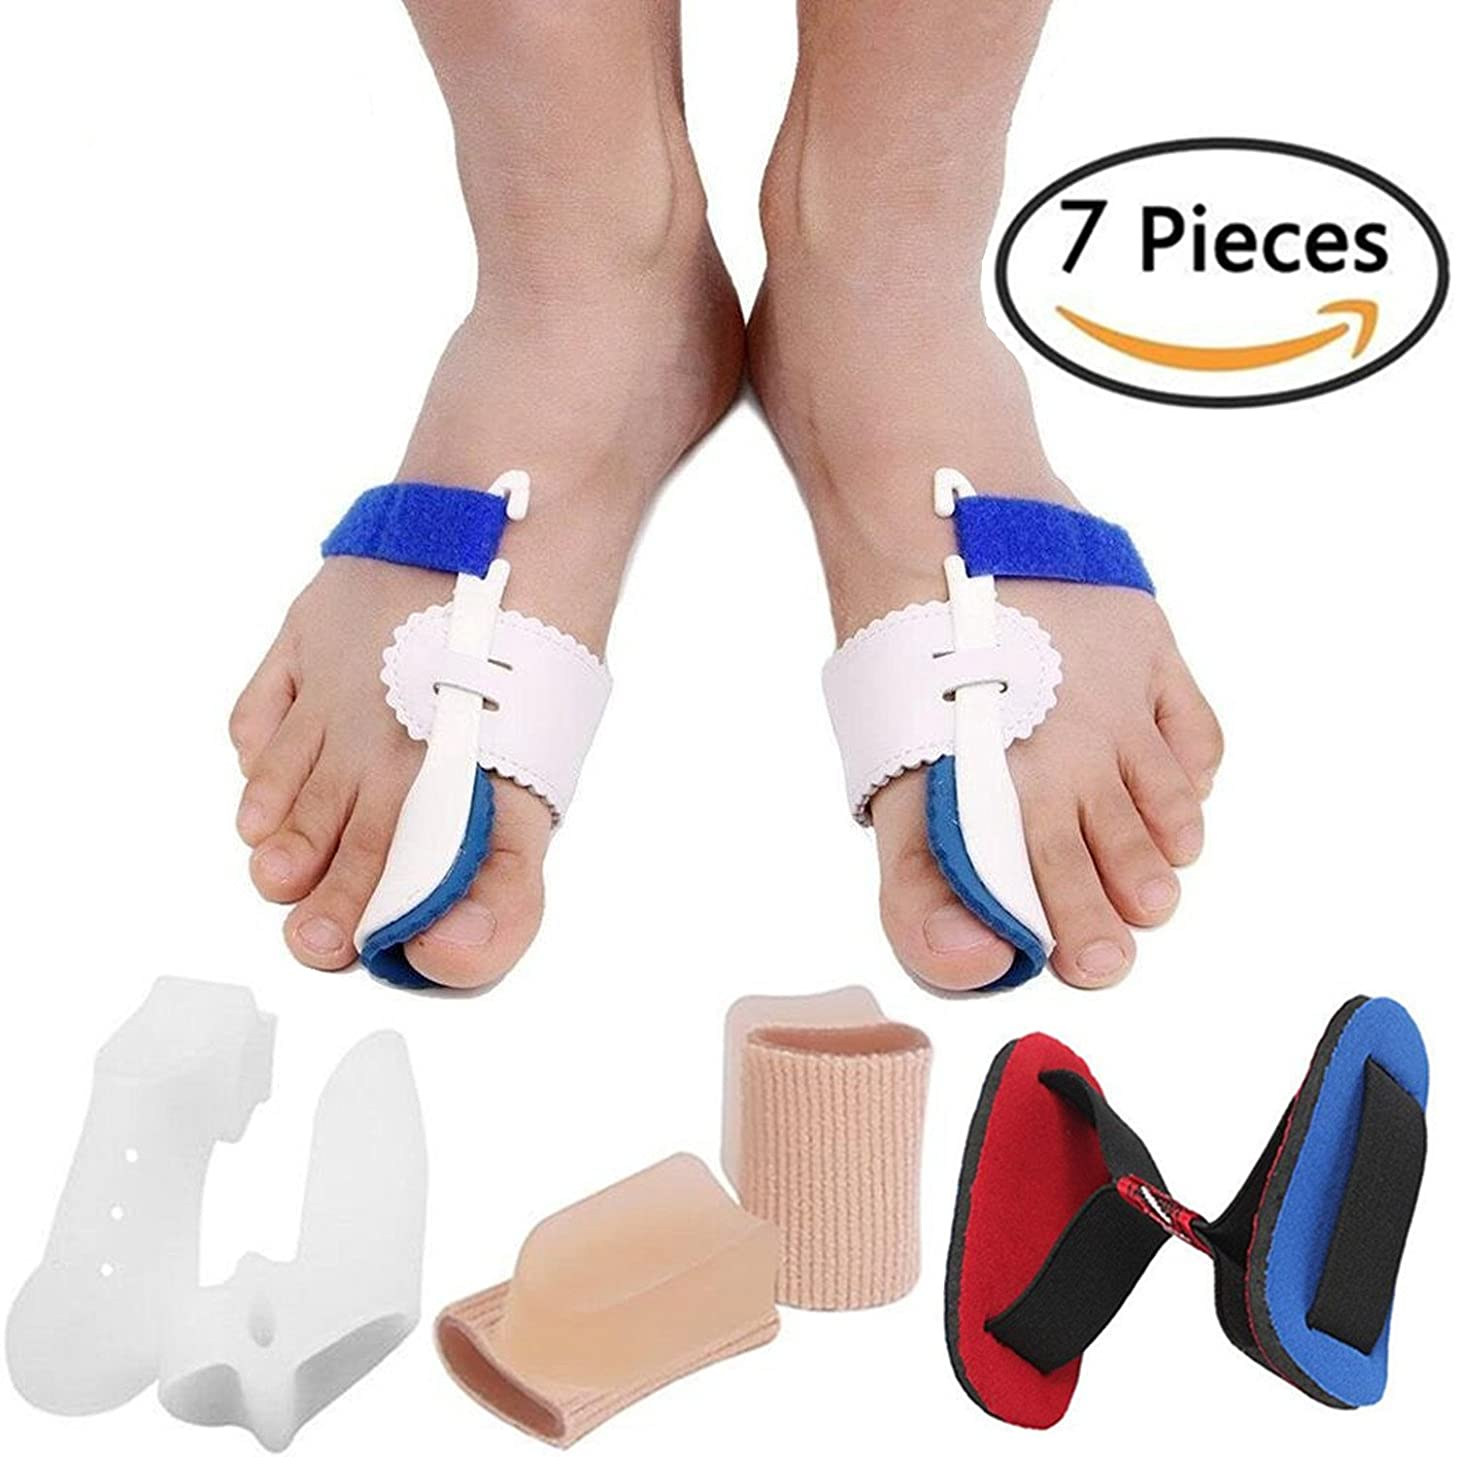 デッキ演じる腹Bunion Corrector Bunion Relief Protector Sleeves Kit, Big Toe Corrector Straightener Separator Treat Pain in Hallux Valgus, Big Toe Joint, Hammer Toe, Splint Aid Surgery Treatment